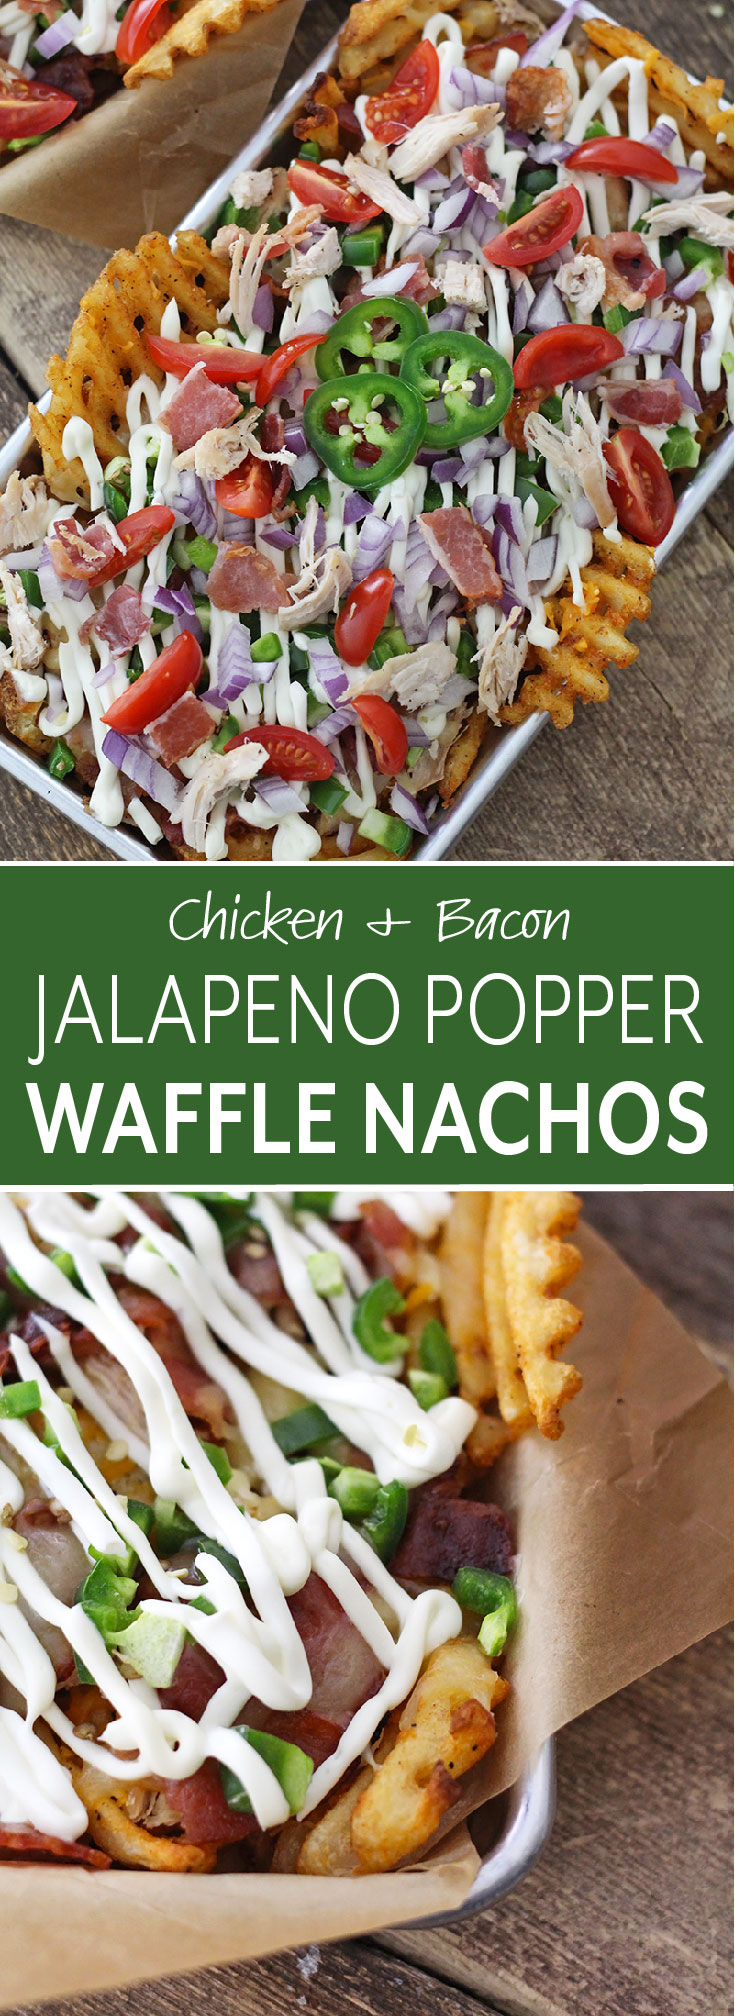 Chicken and bacon Jalapeno Popper Waffle Nachos